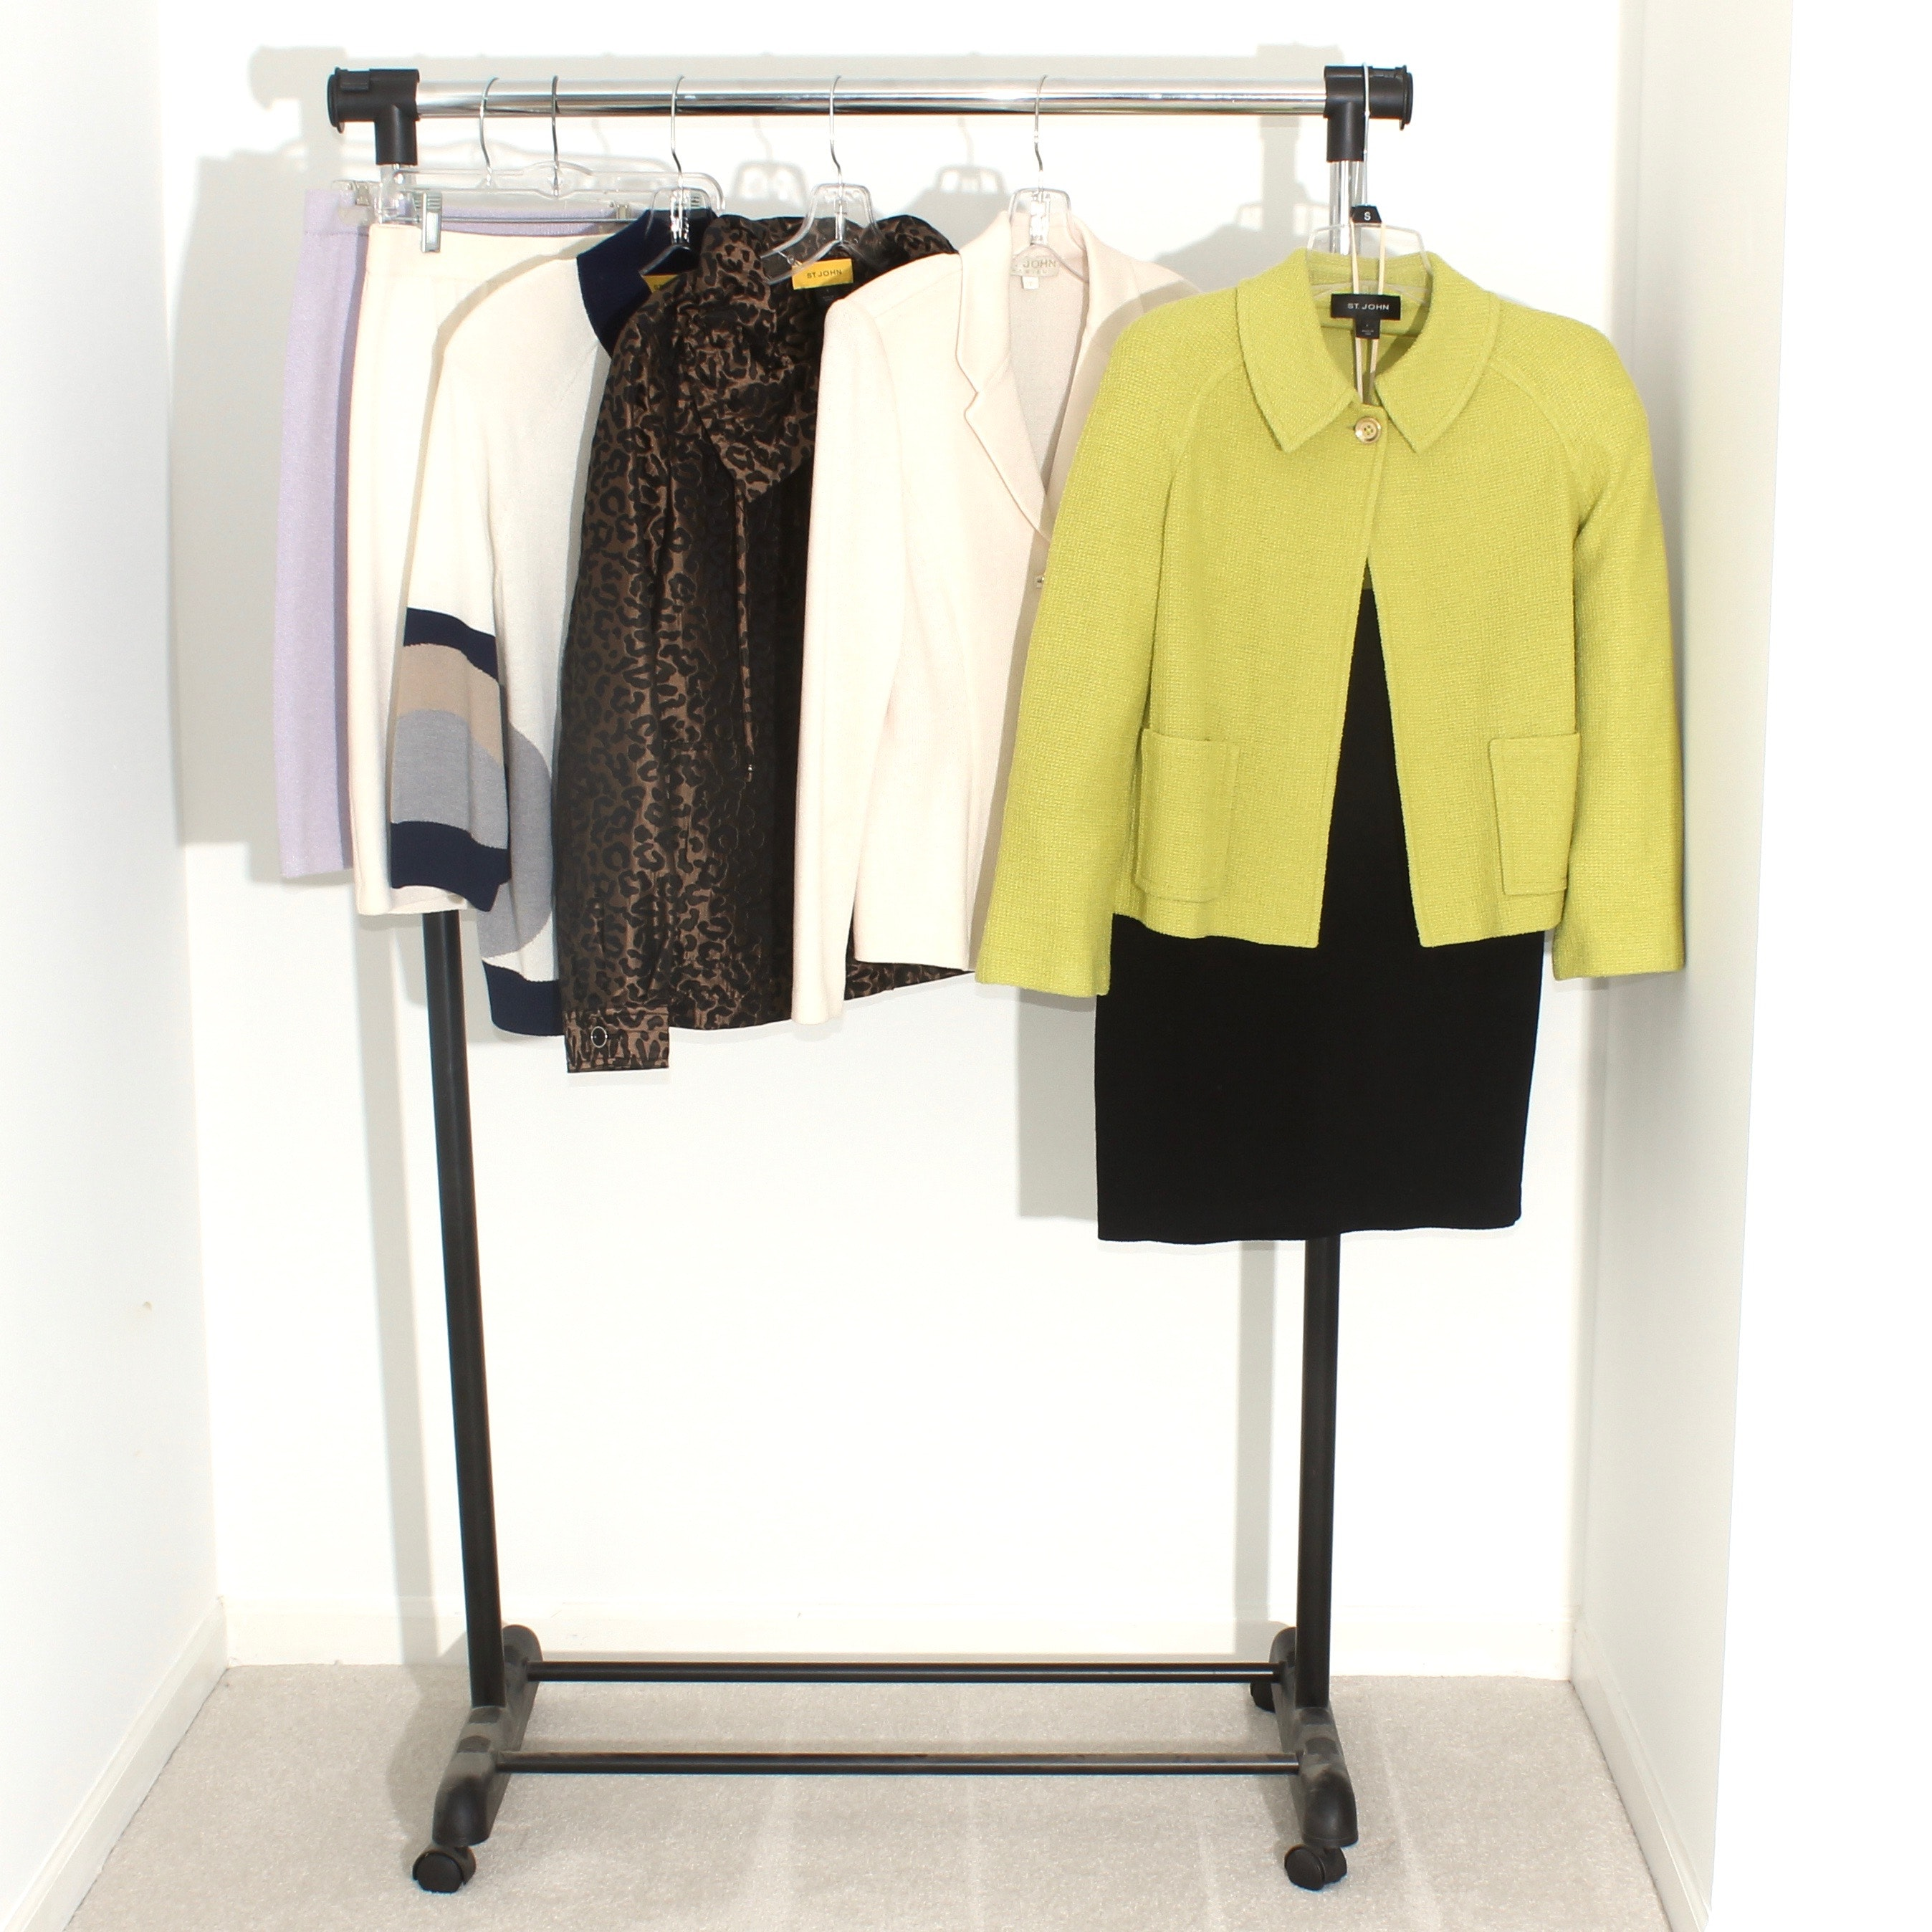 St. John Women's Outerwear Including Basics and Marie Gray